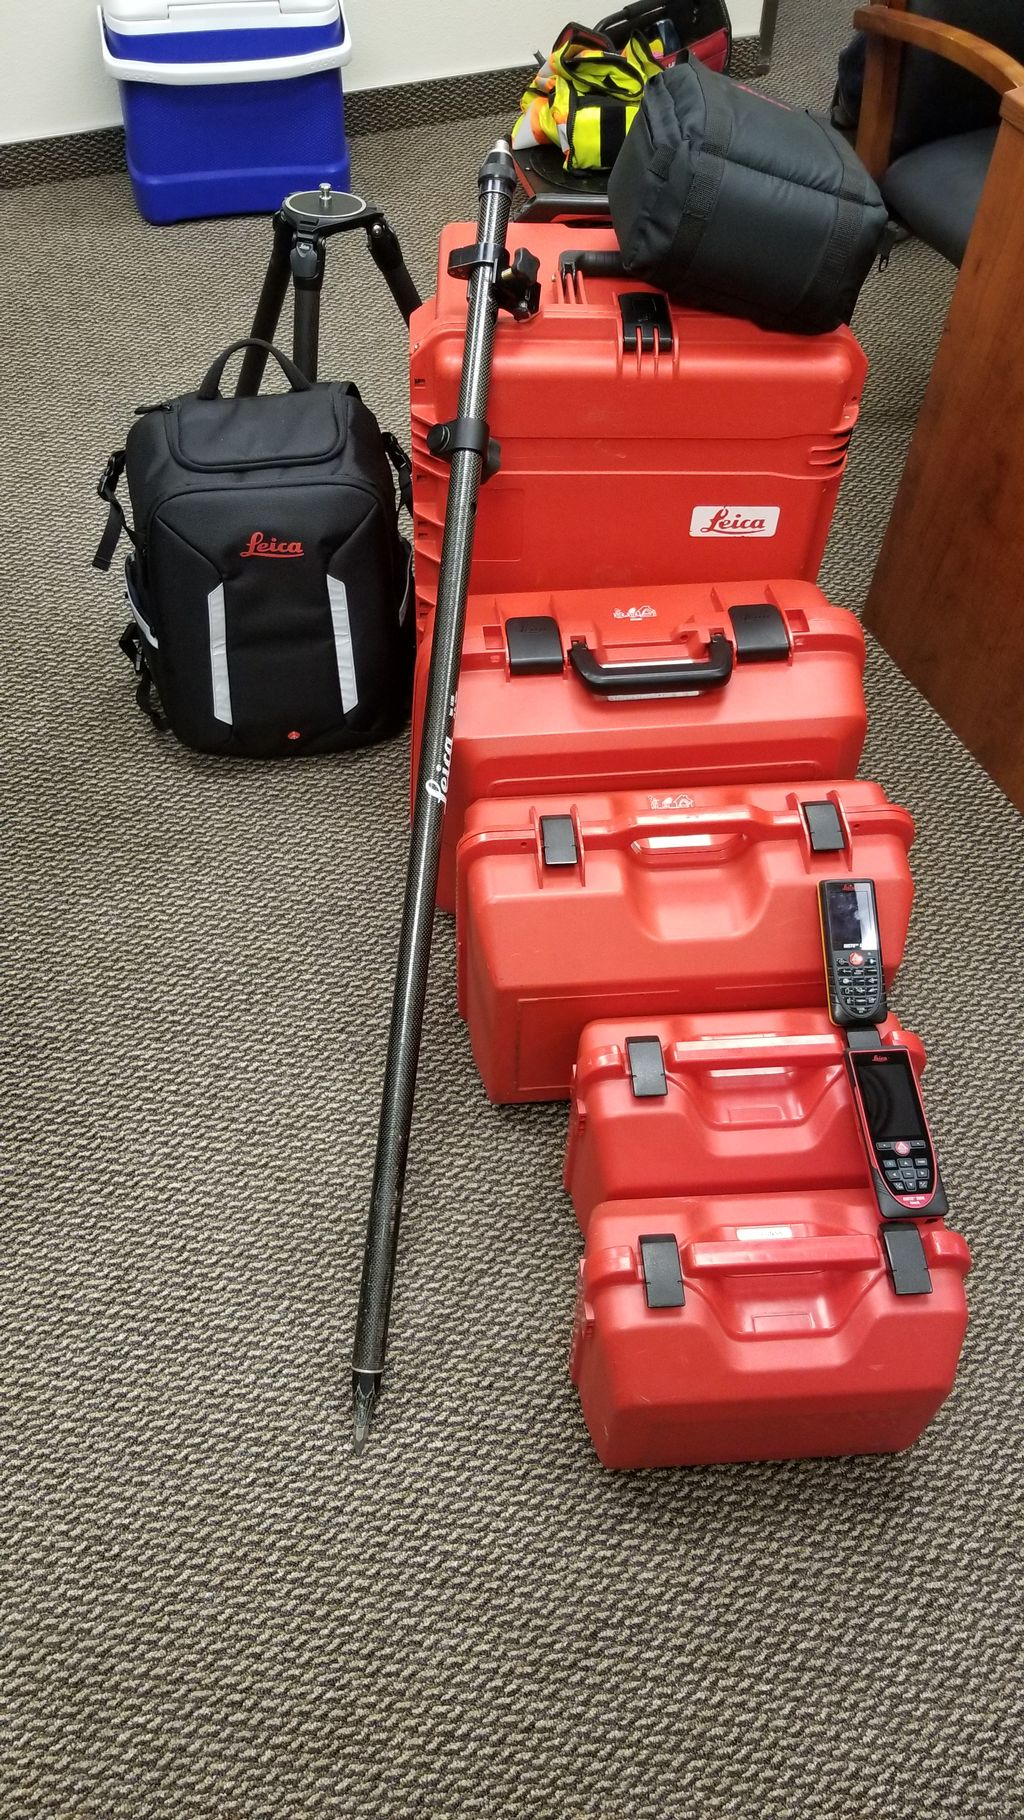 State of the art surveying equipment